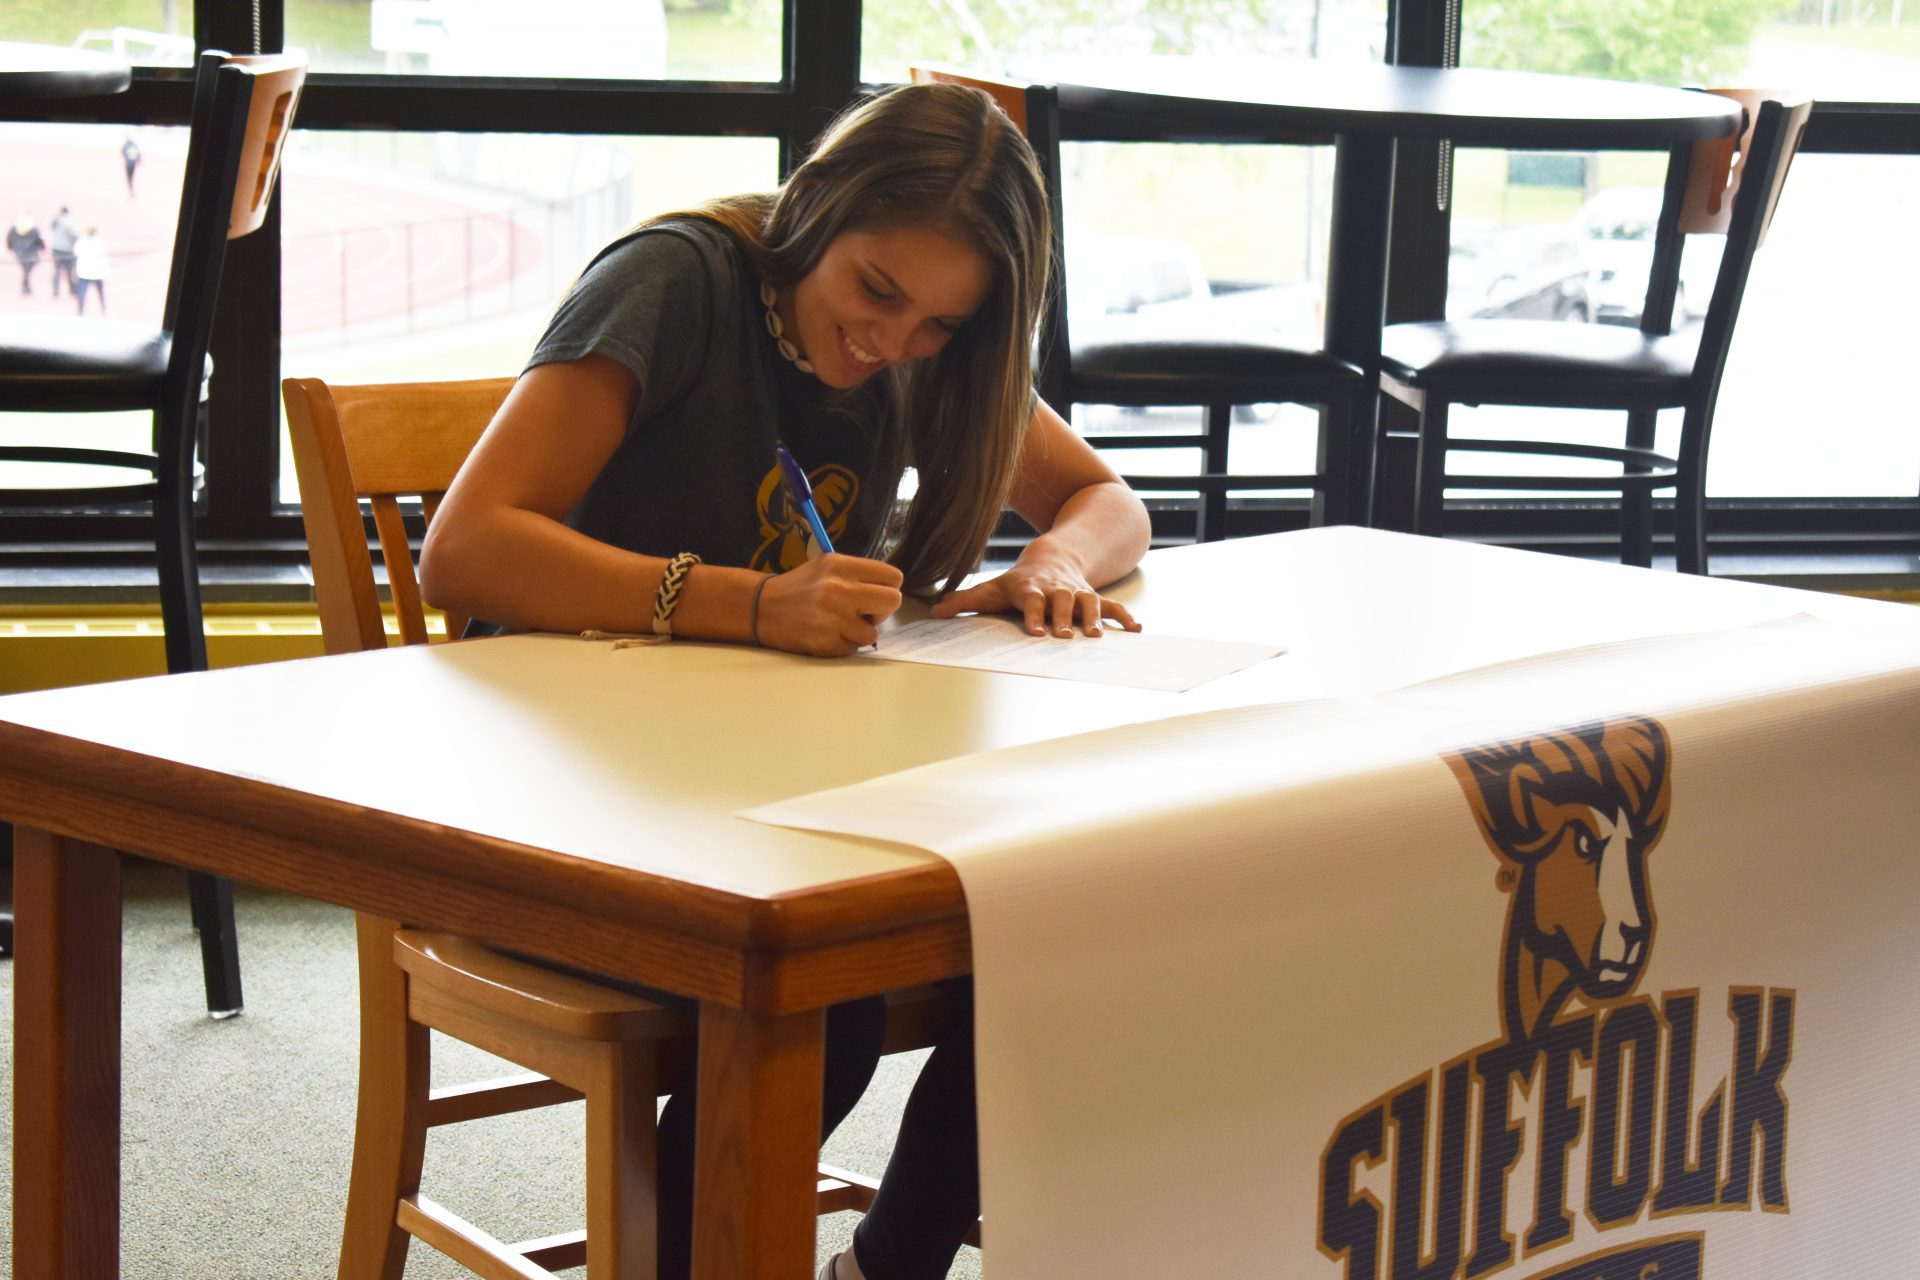 Shaylen Amaral Athletic Signing and smiling